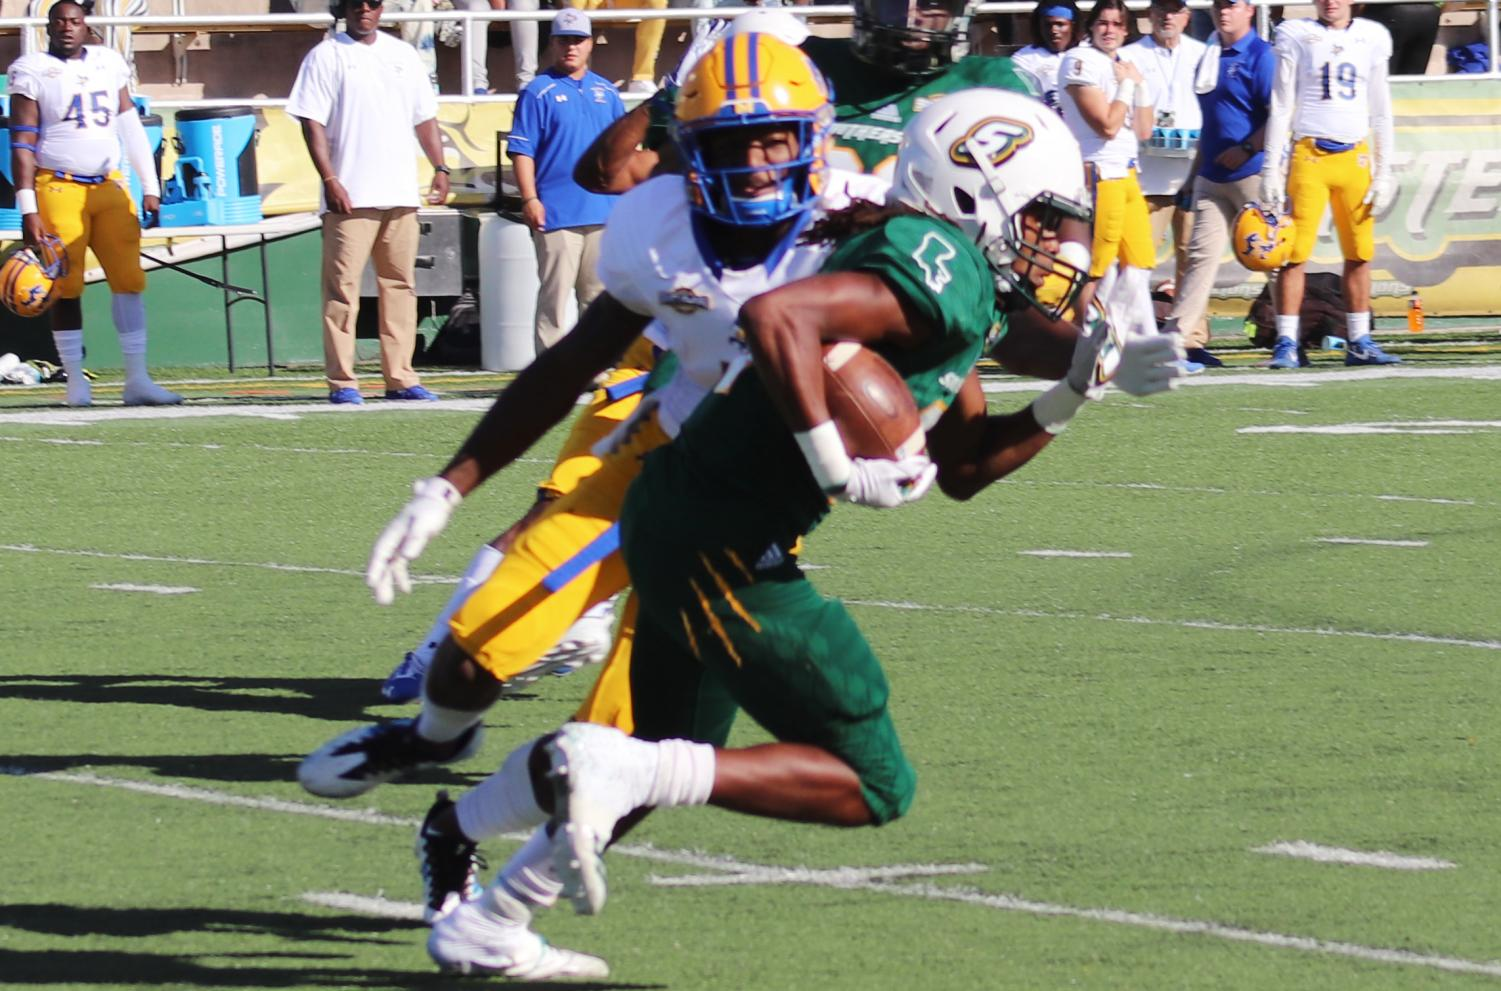 The Lions football team finished its last home game of the season with a 23-6 win against McNeese State University.